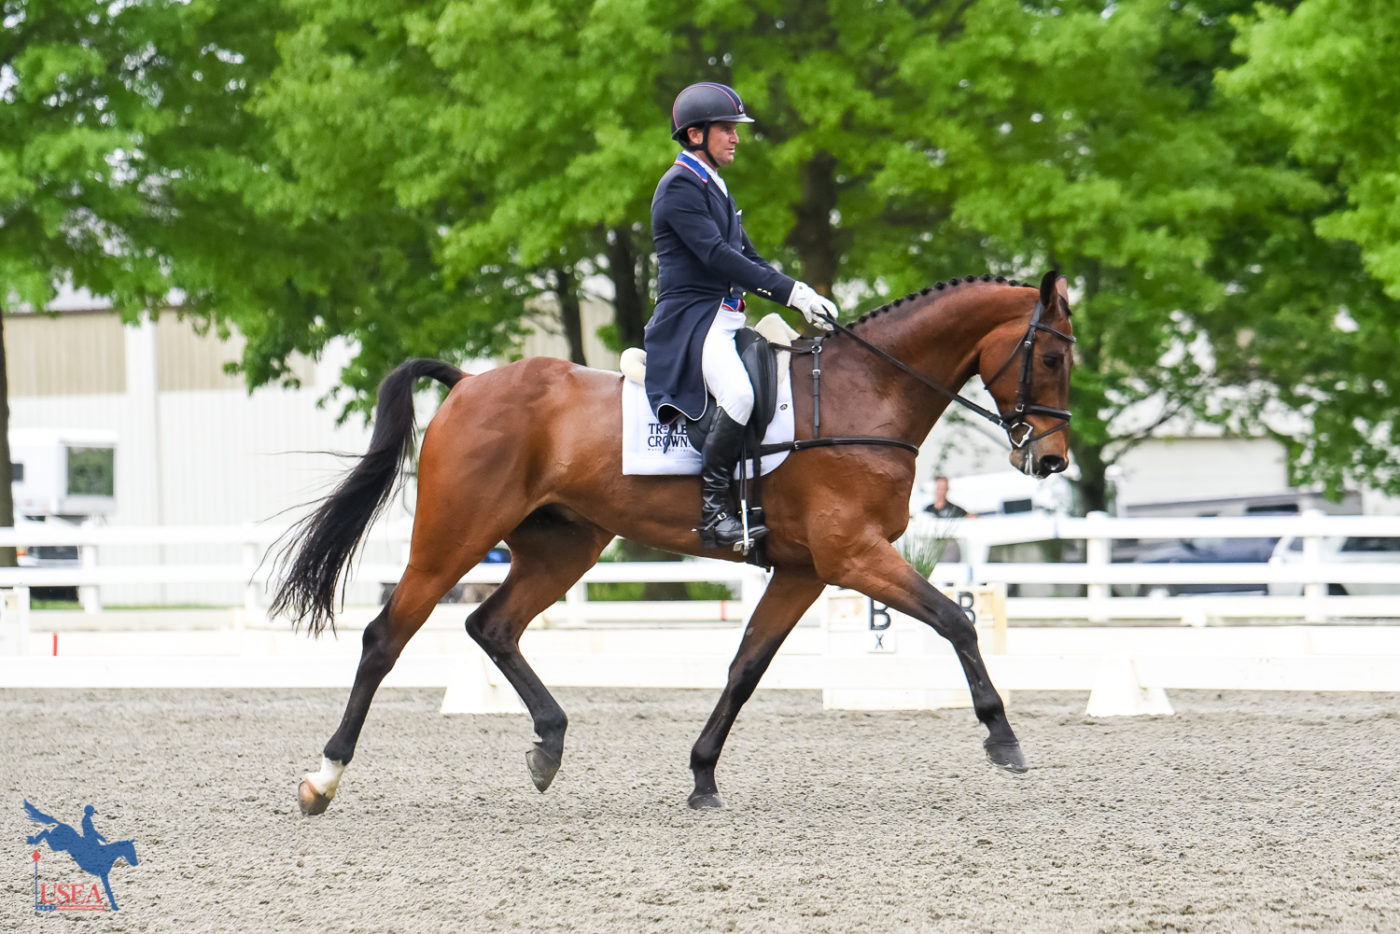 8thT - Phillip Dutton and Fernhill Singapore - 35.8